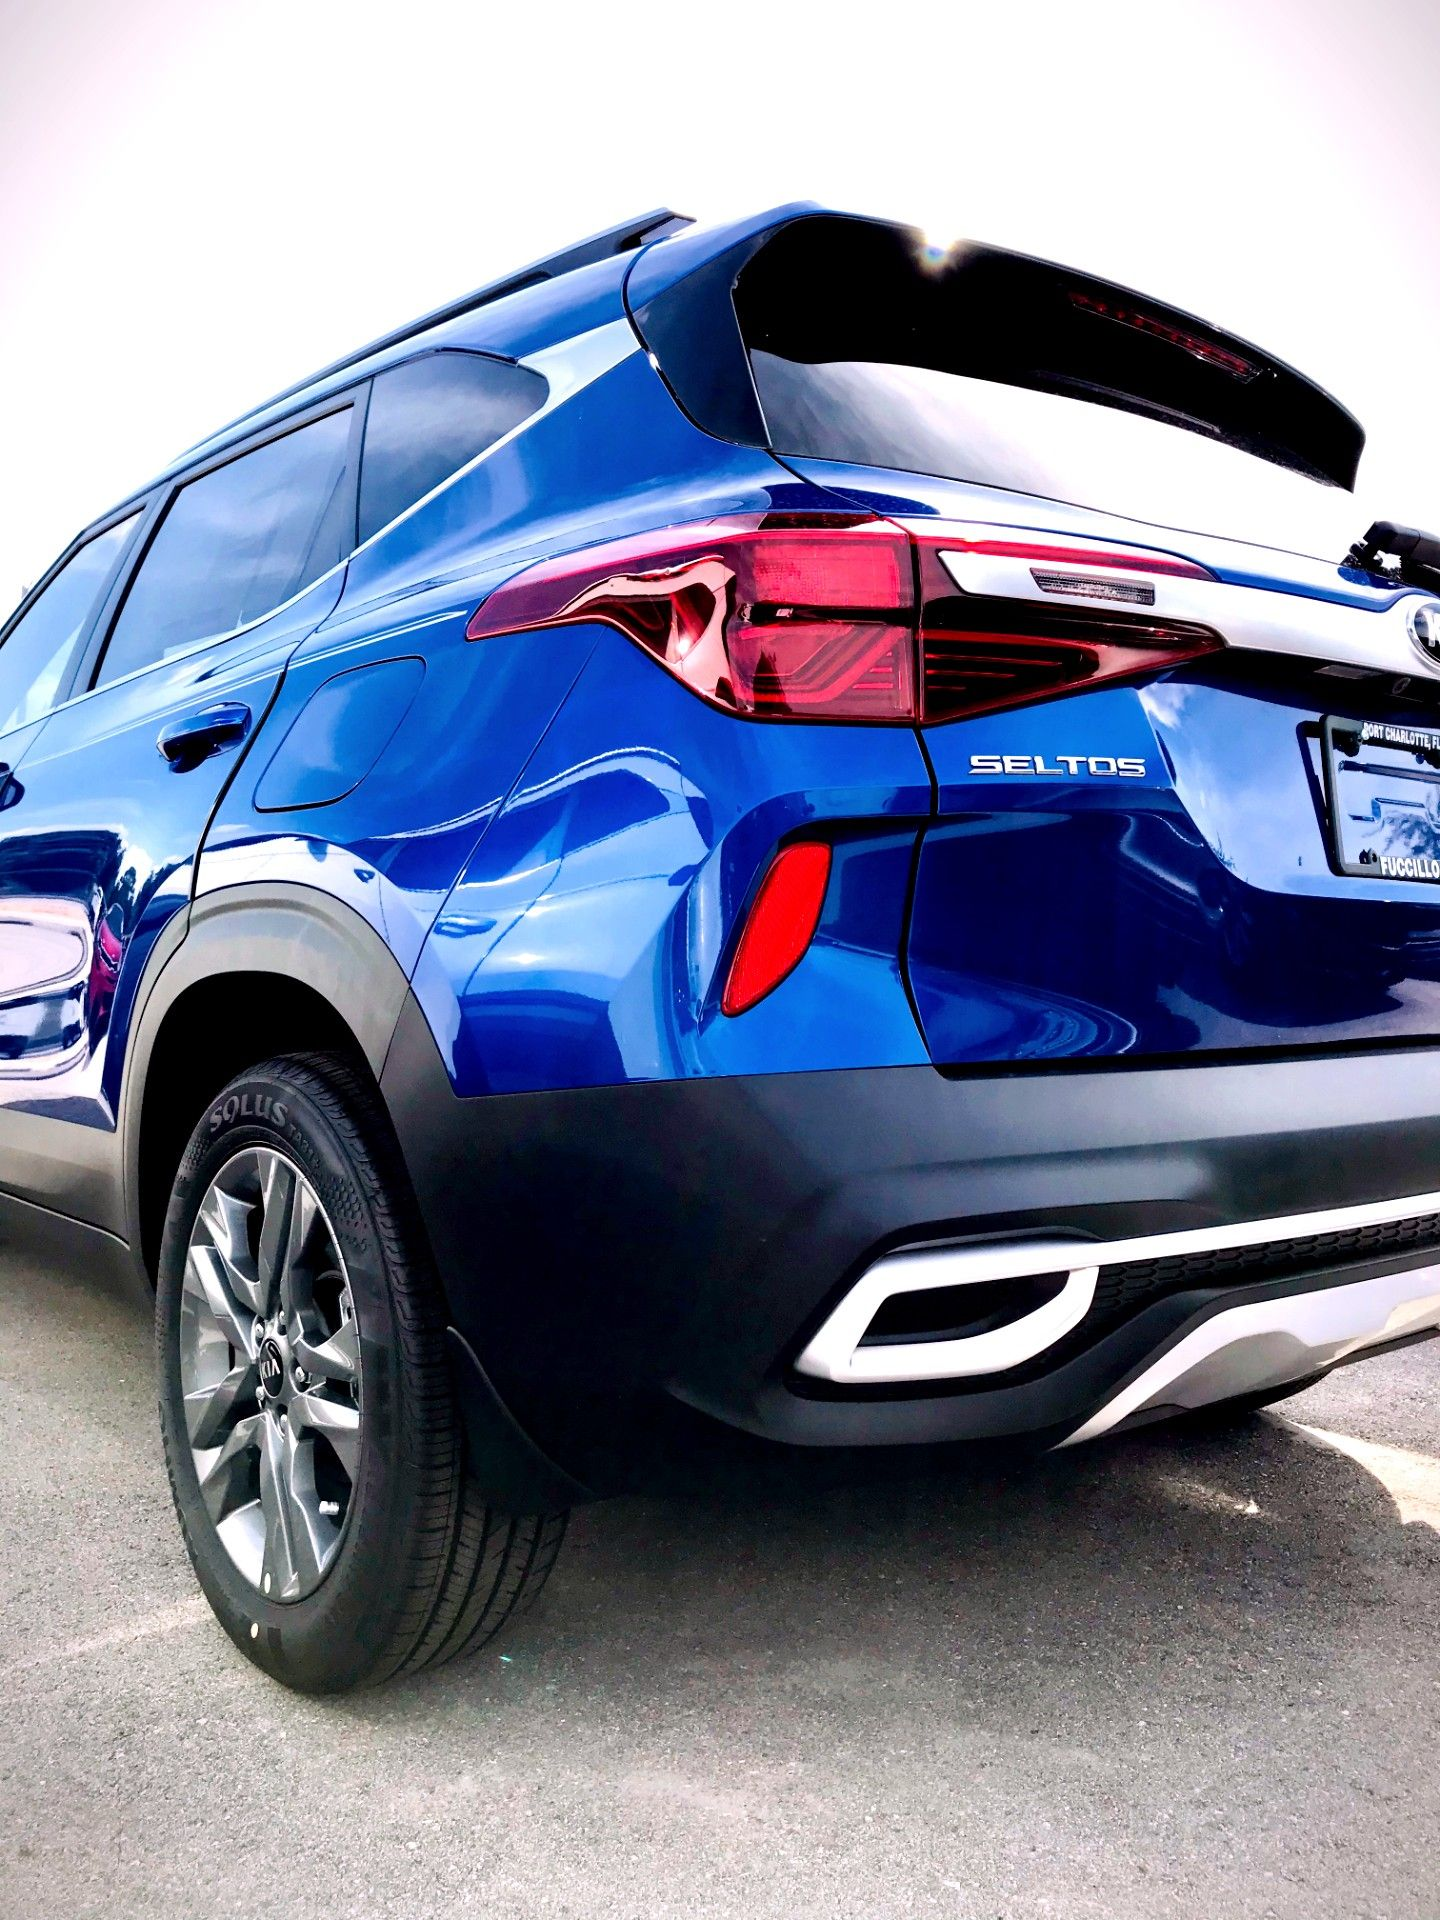 A beautifully designed crossover SUV from Kia continues to